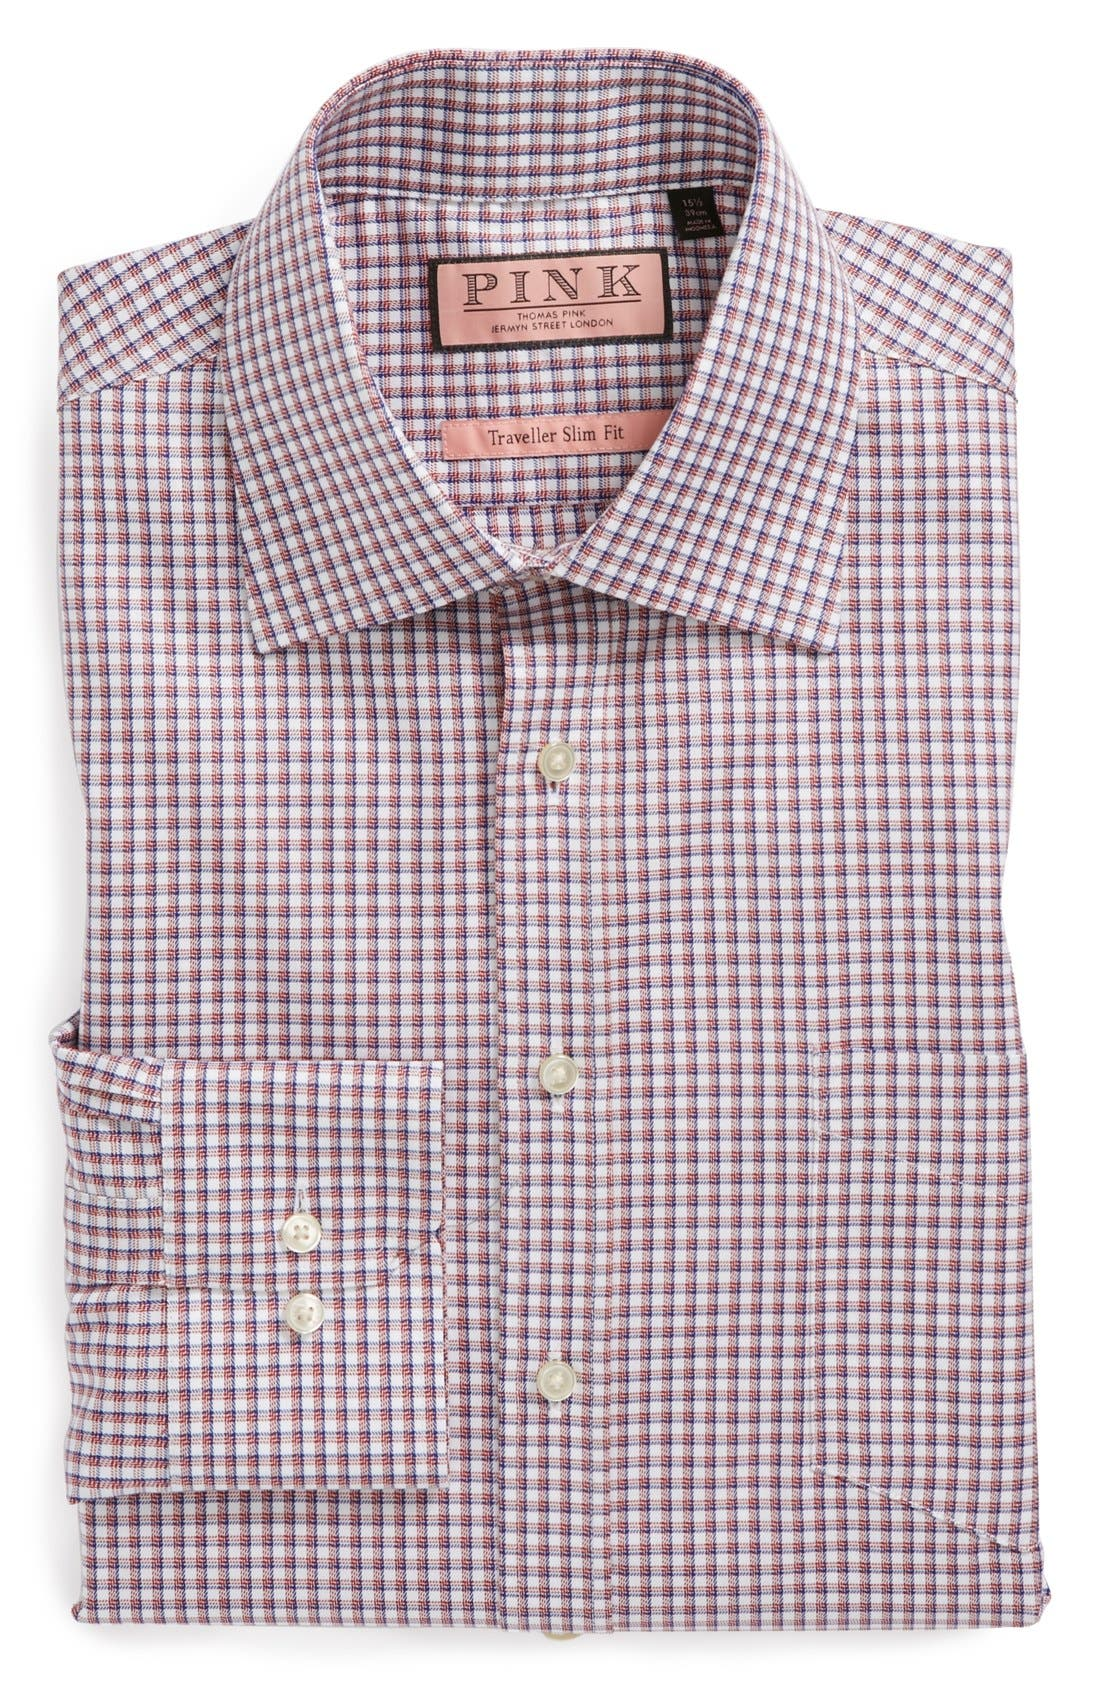 Alternate Image 1 Selected - Thomas Pink 'Cantwell' Slim Fit Traveler Check Non-Iron Dress Shirt